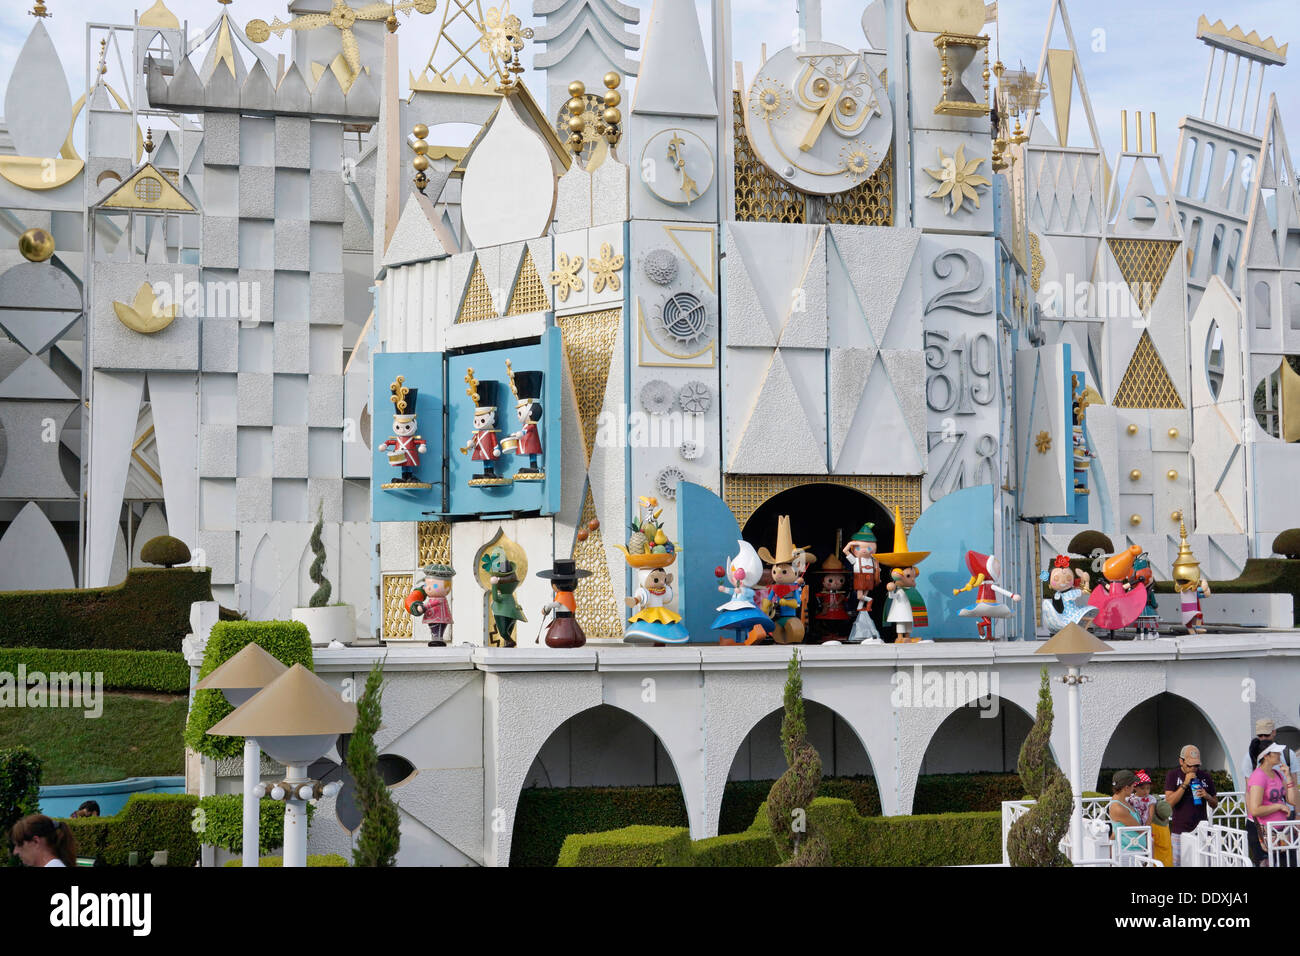 It's A Small World, Disneyland Resort, Fantasyland, Magic Kingdom, California Stock Photo